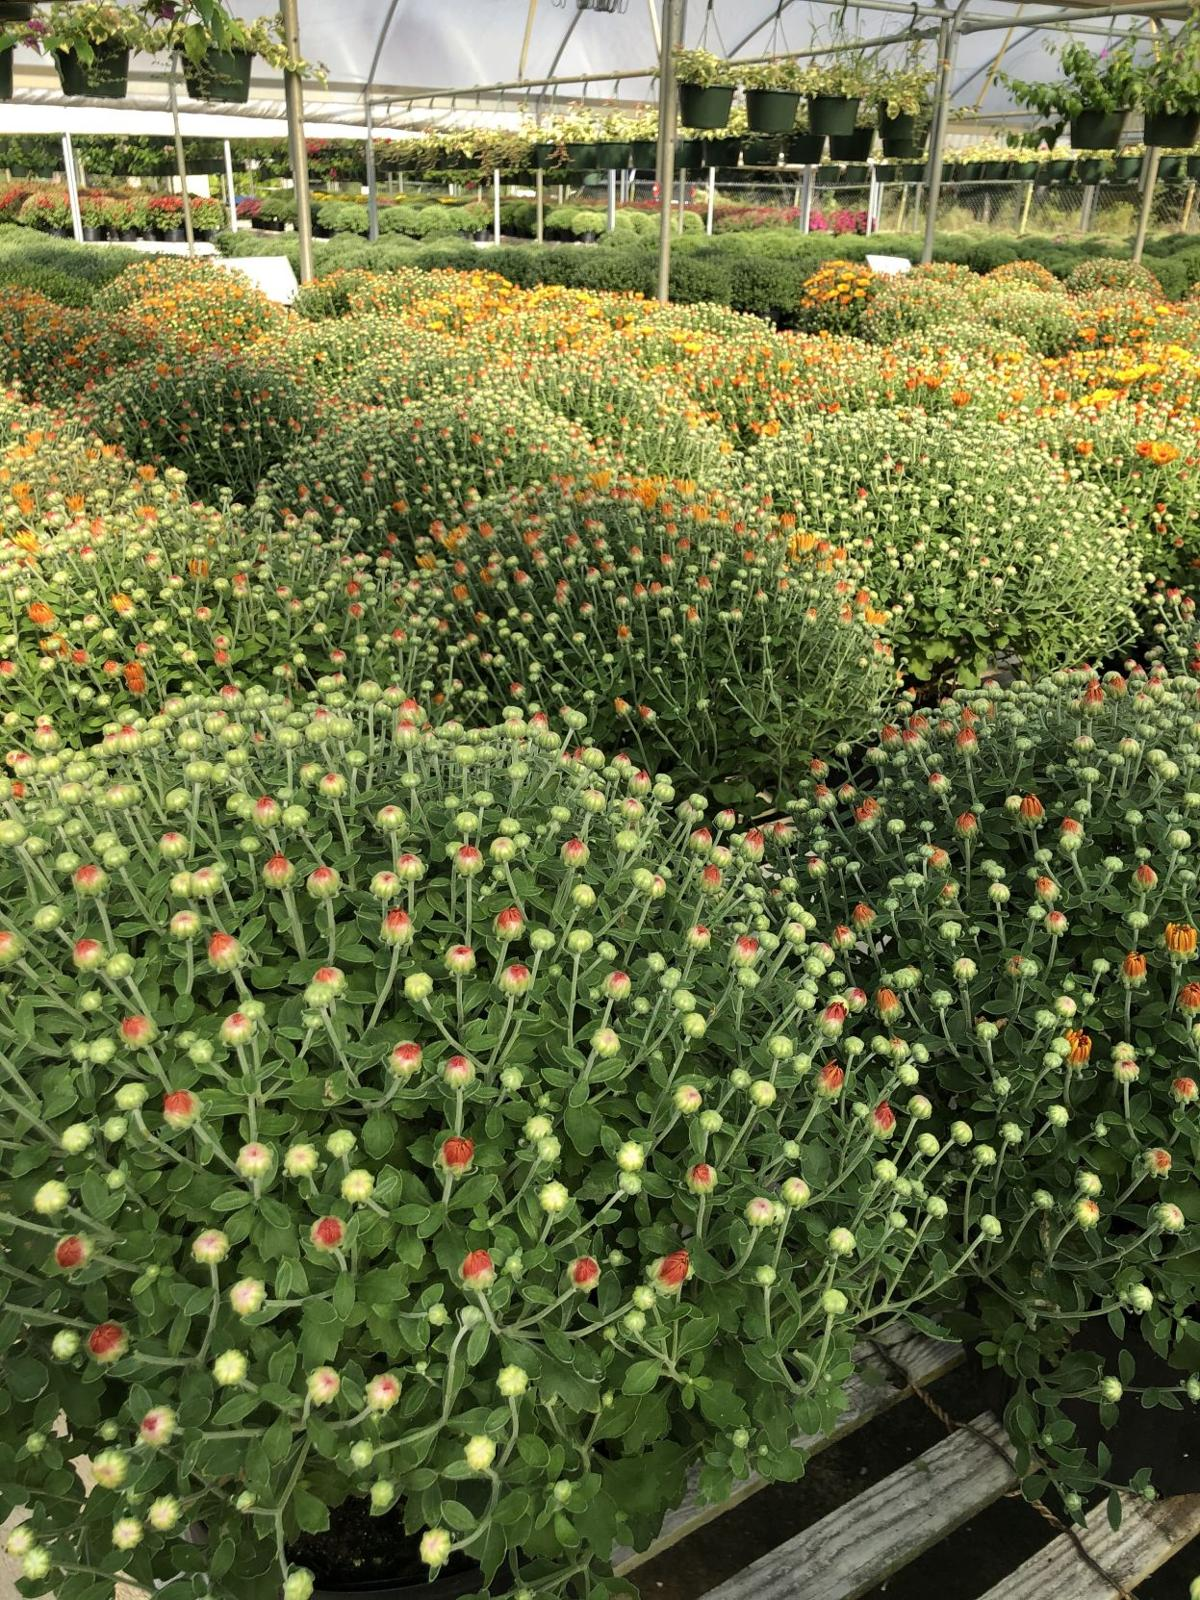 Select mums with closed buds for an extended bloom time pho.jpg